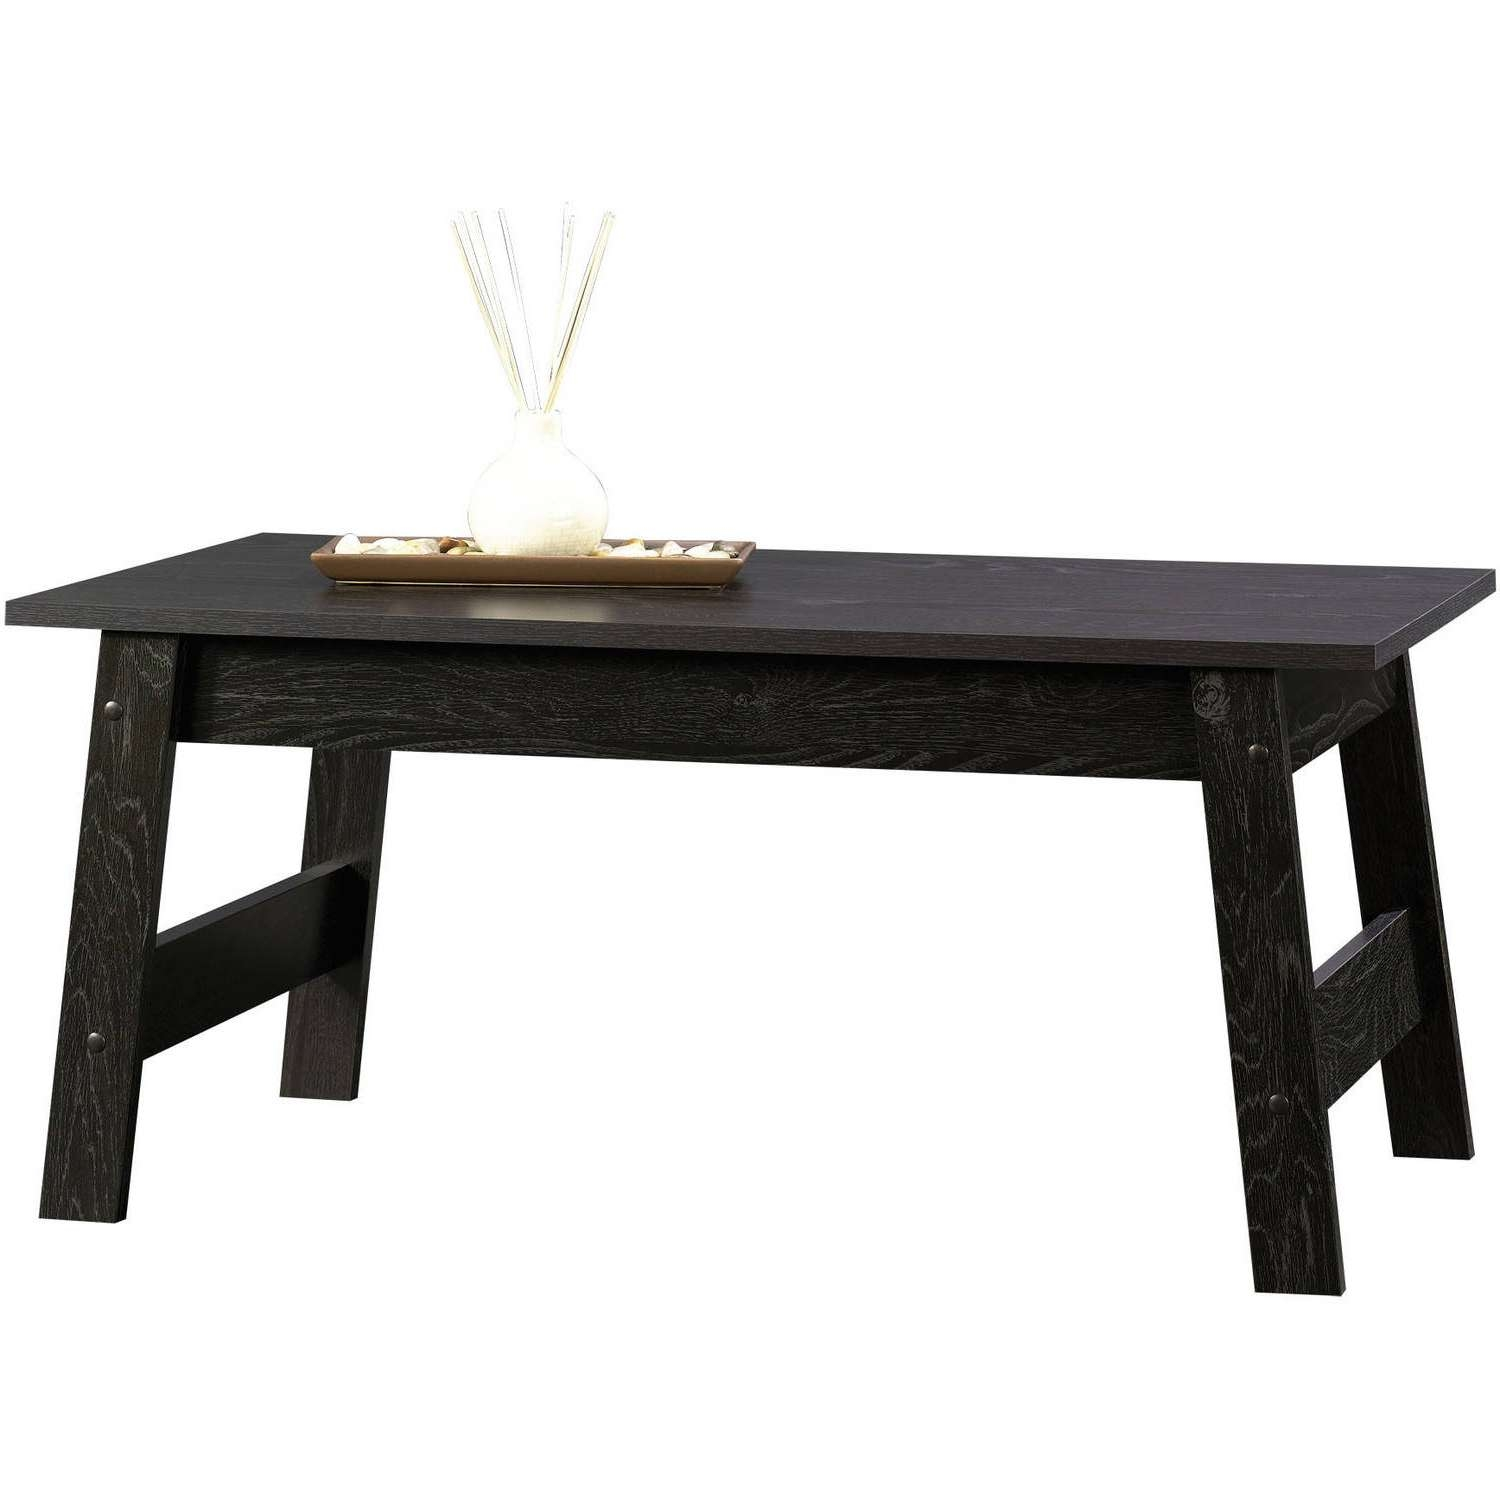 Sauder Beginnings Collection Coffee Table, Black – Walmart For Popular White And Black Coffee Tables (View 17 of 20)